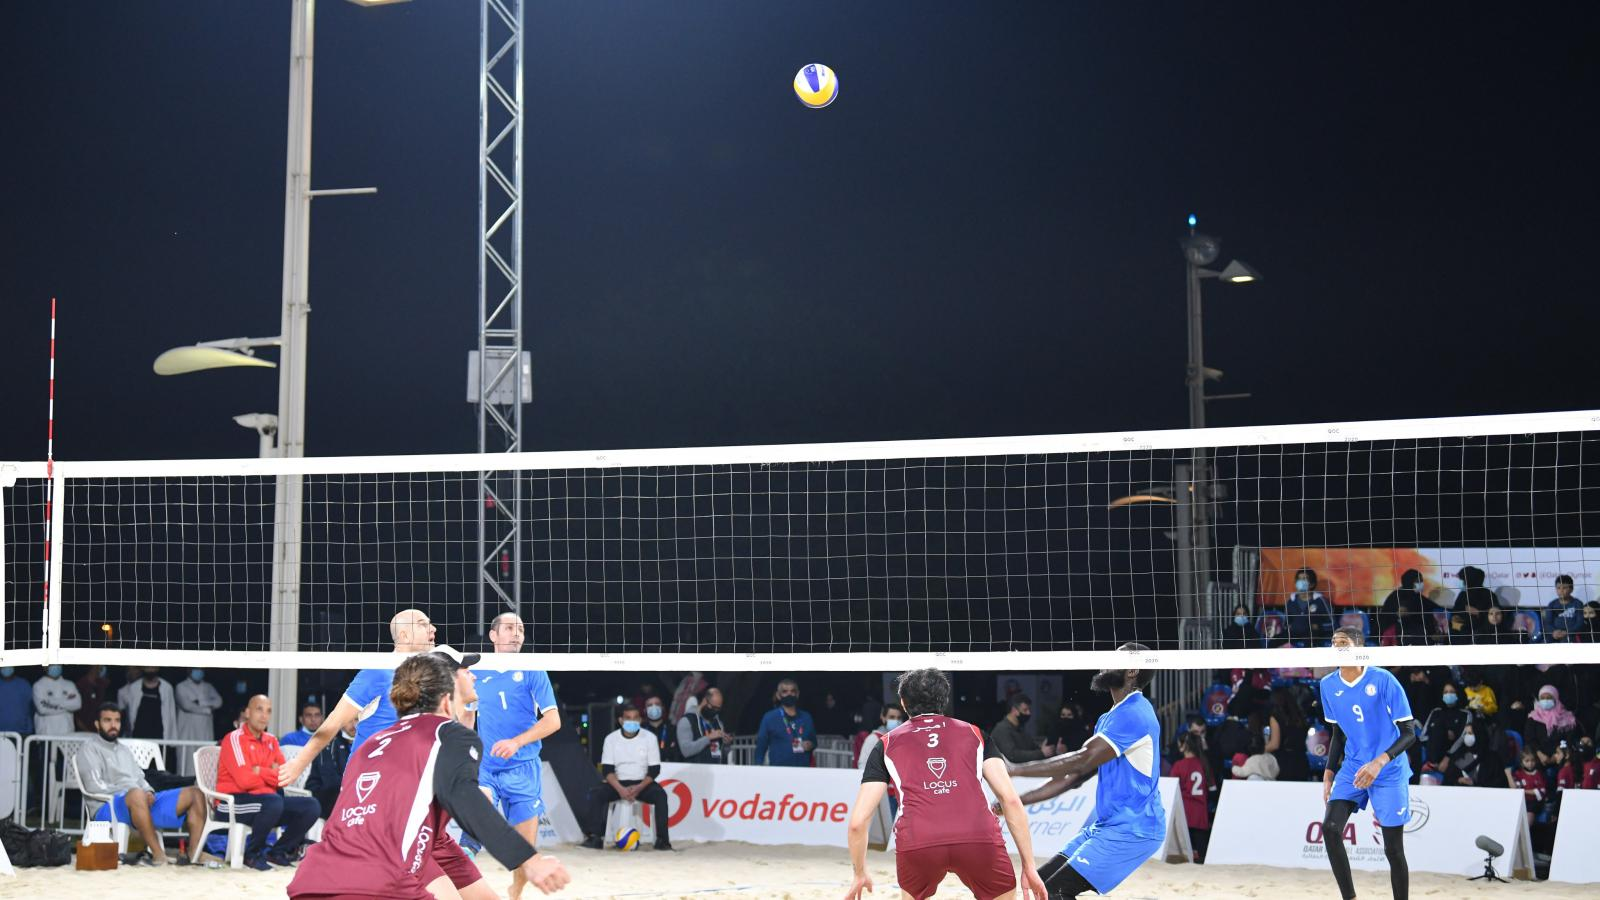 Inaugural QOC Beach Games ends with exciting actions in men's events